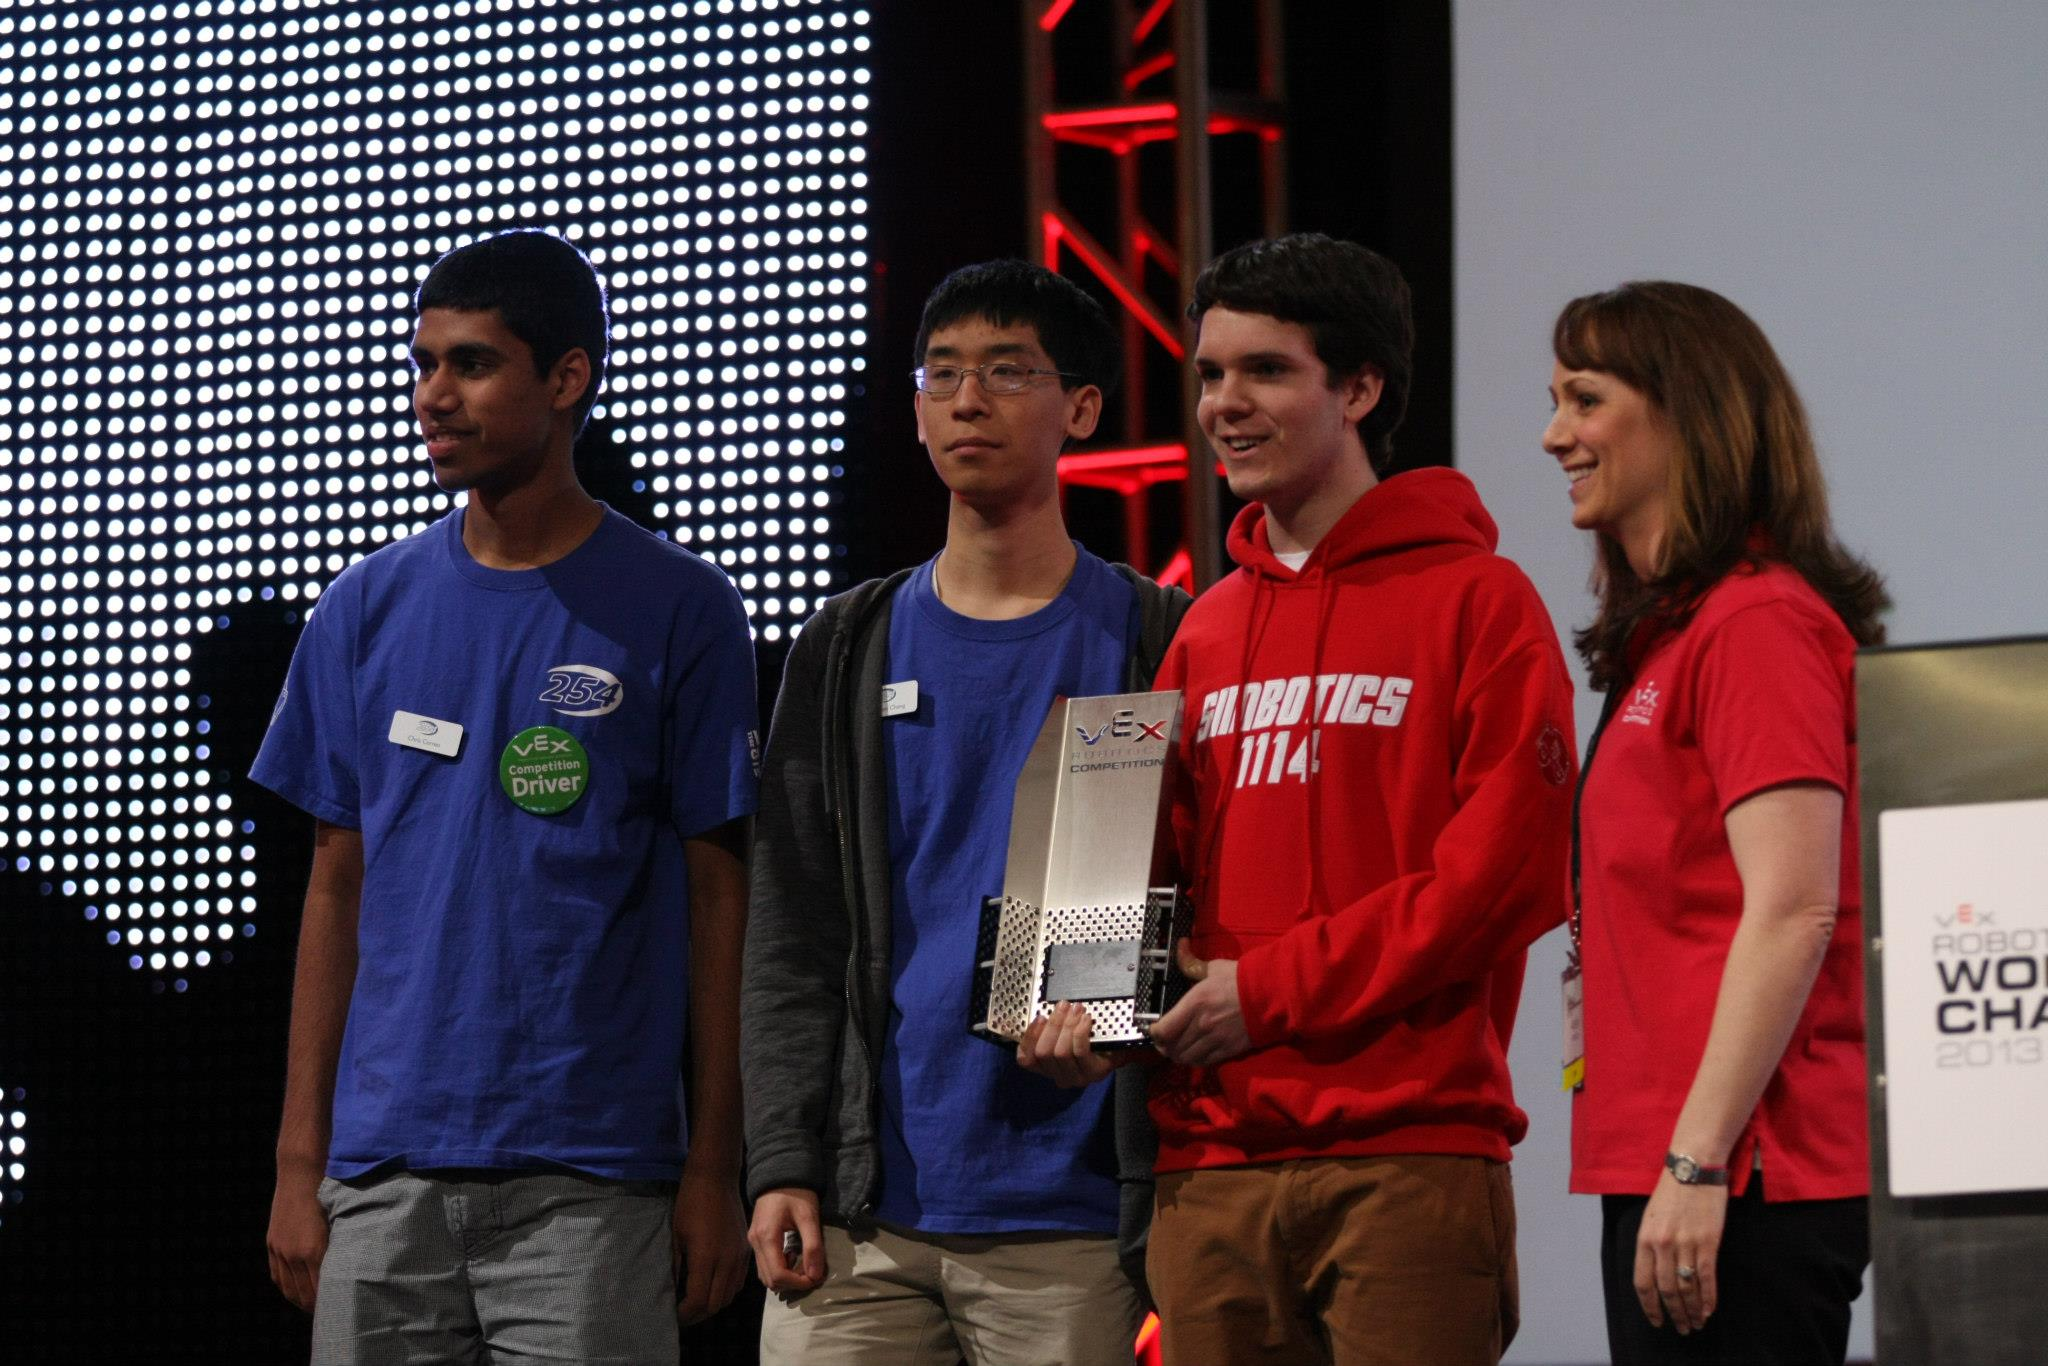 VEX Robotics world championship web design award